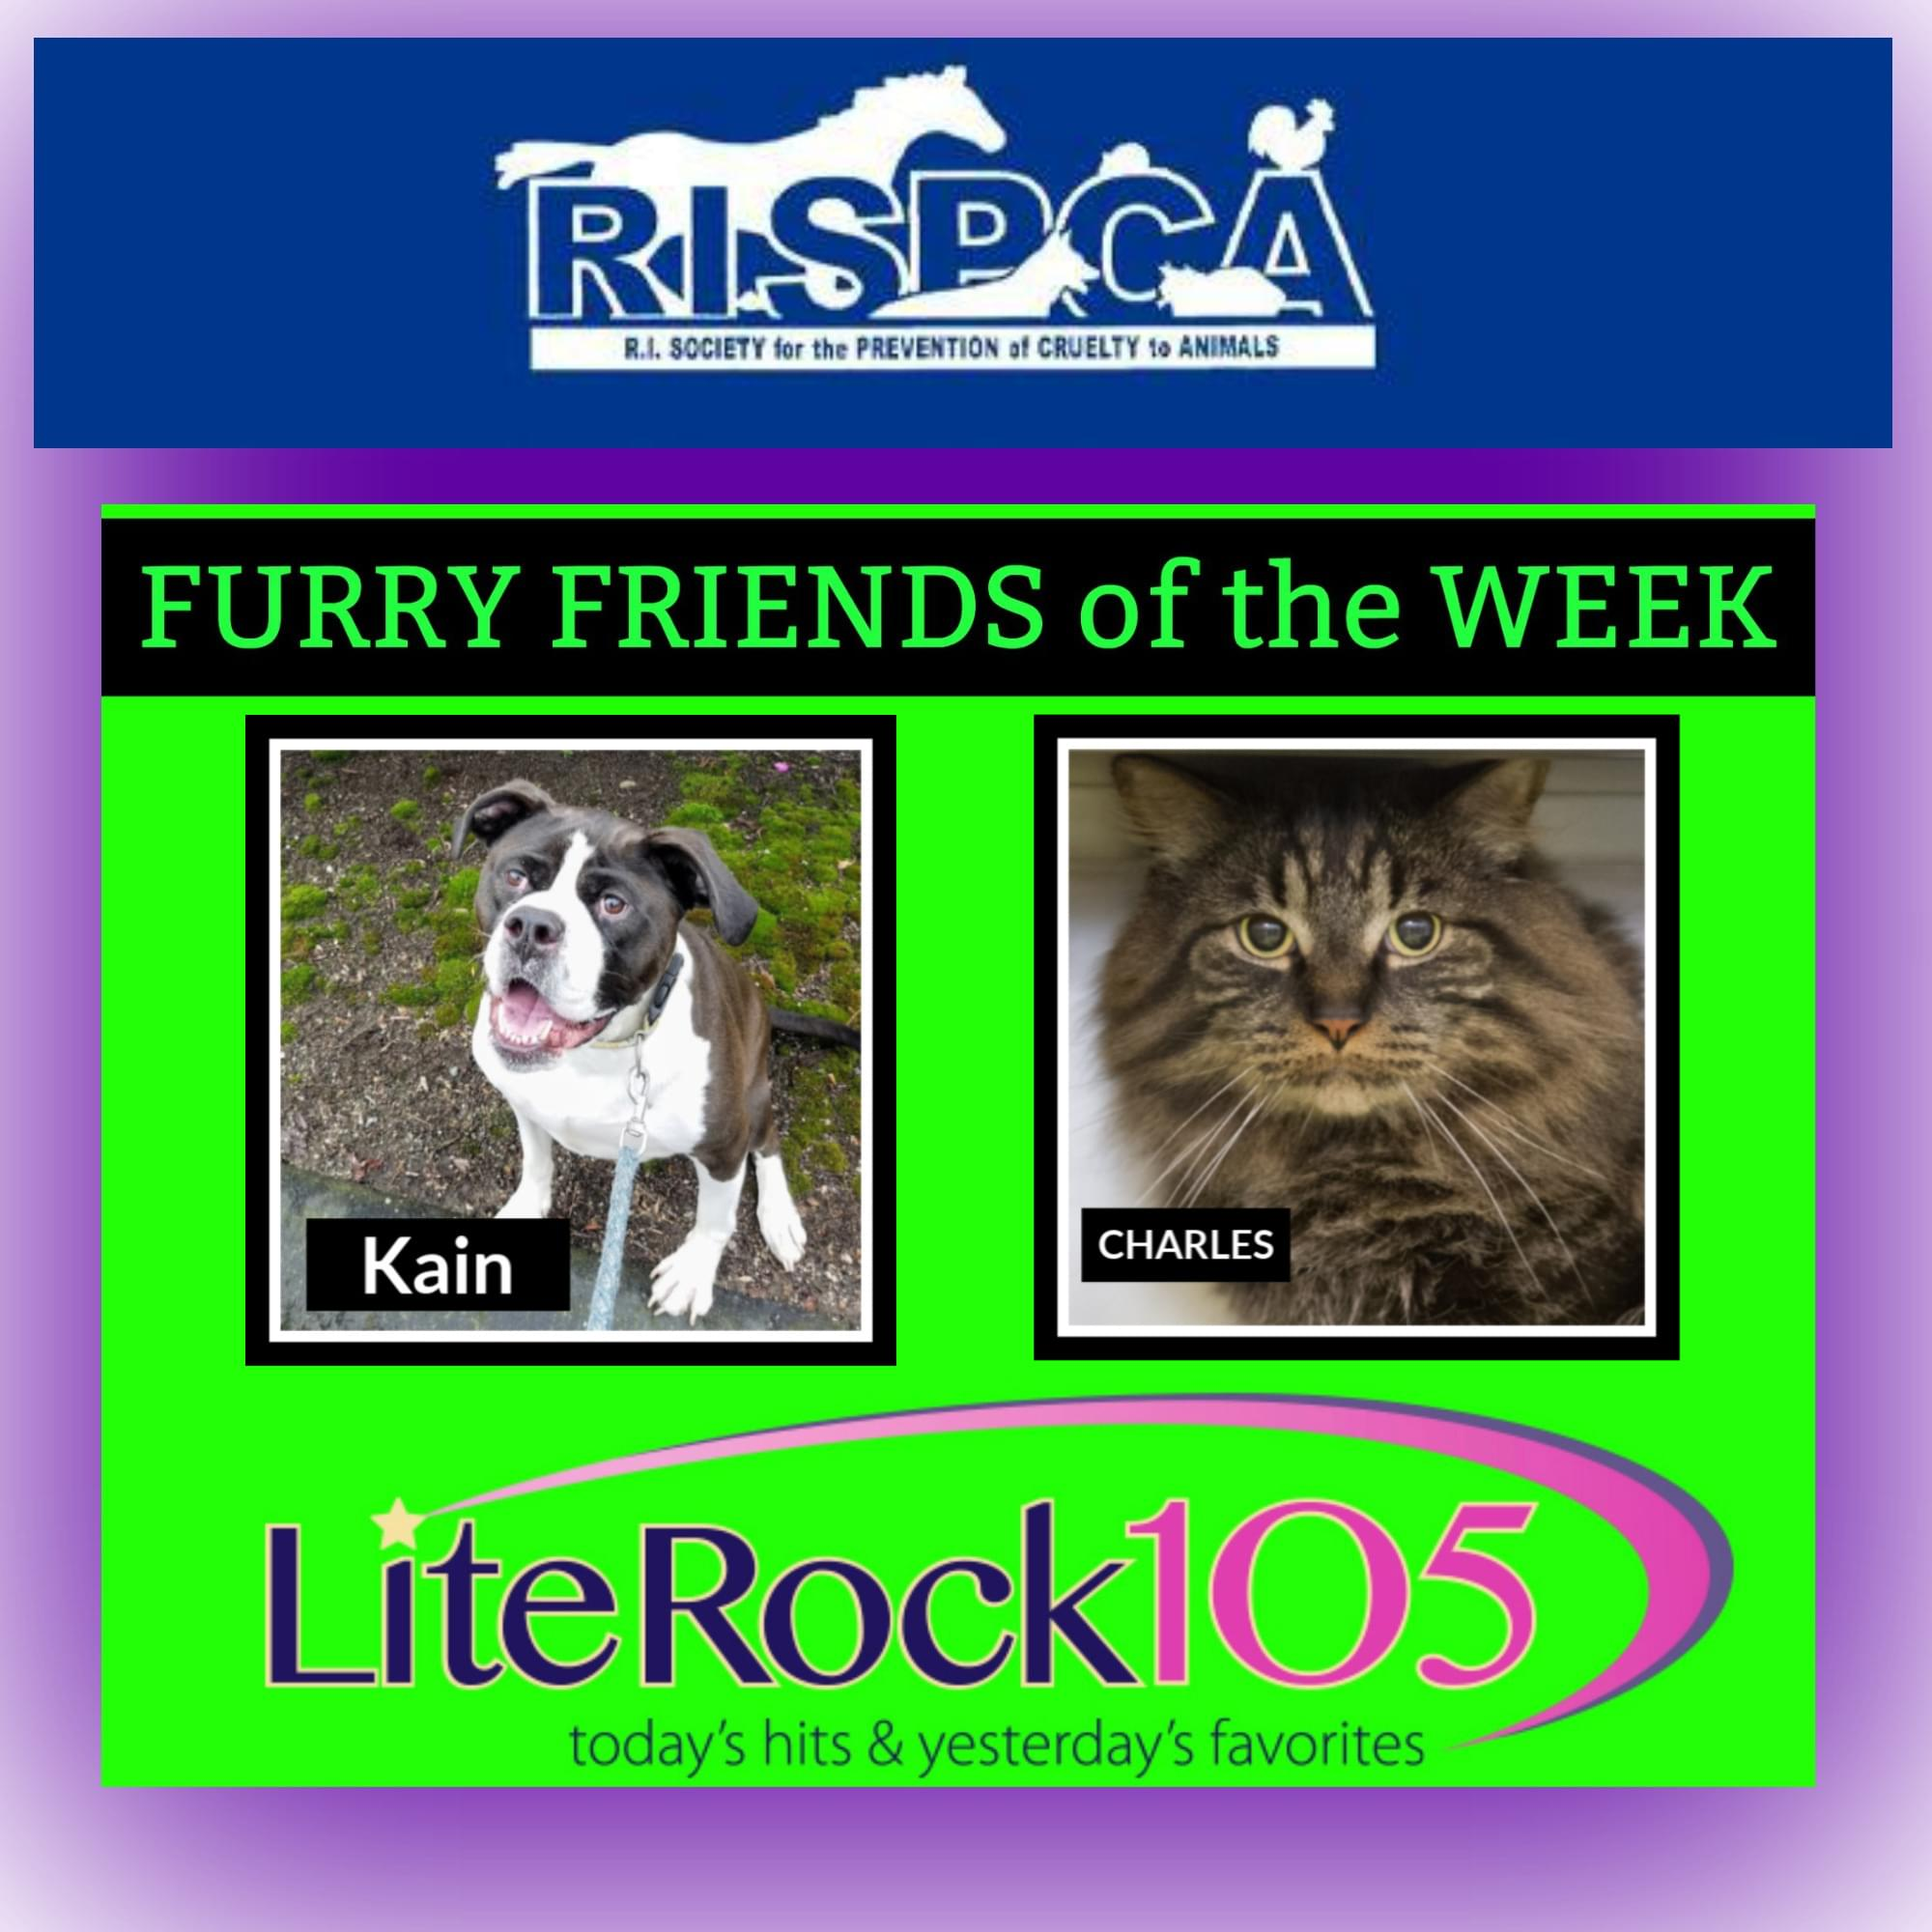 Meet Charles and Kain, this week's FURRY FRIENDS of the WEEK (5/13/19)